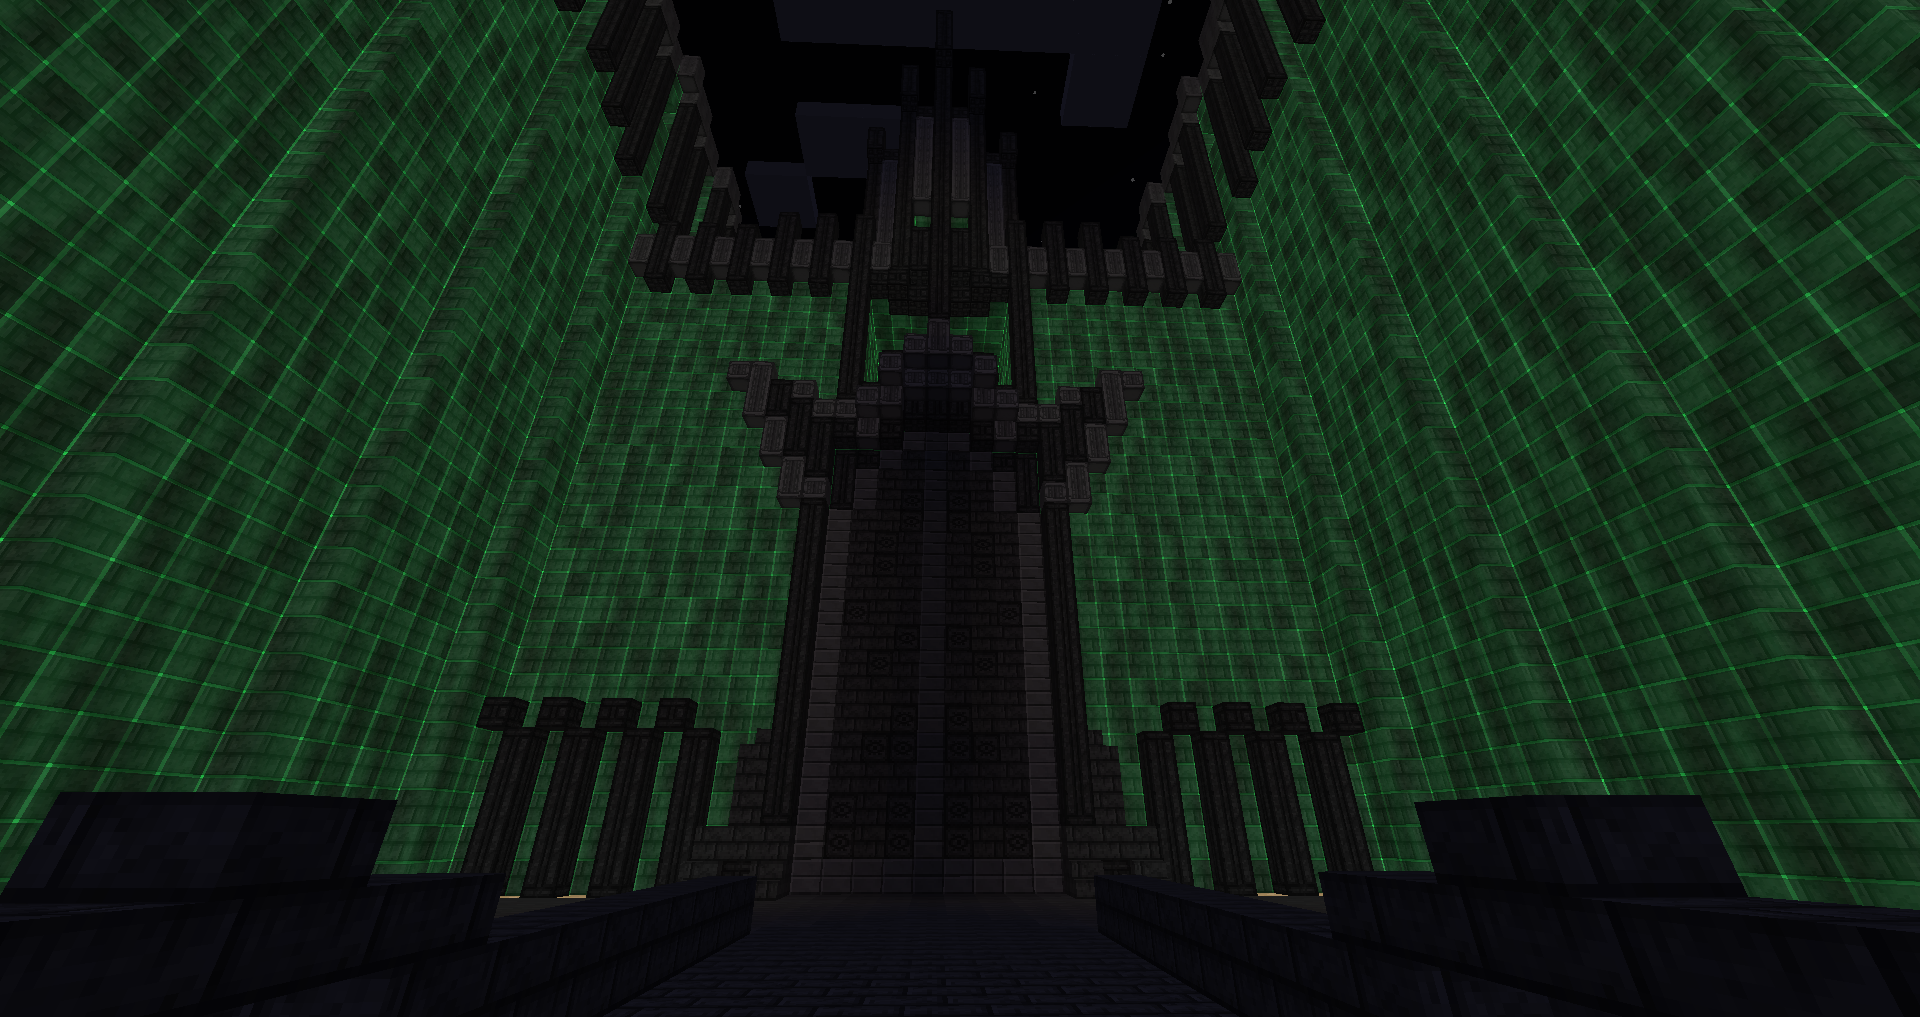 Lotr schematic library the lord of the rings minecraft mod wiki lotr schematic library the lord of the rings minecraft mod wiki fandom powered by wikia sciox Images